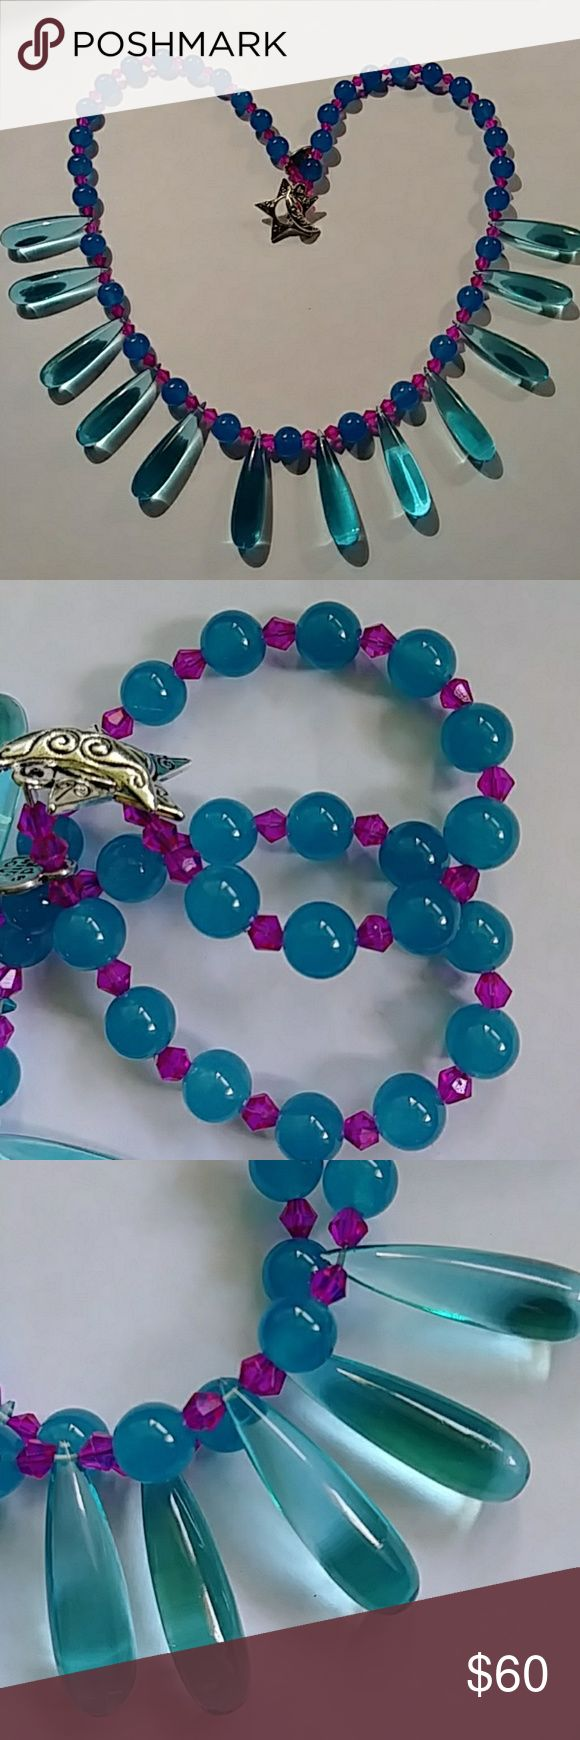 """Agate & Hydro Quartz Feeling colorful? Well then this may be the piece for you! Gorgeous pearls of bright blue Agate and sparkling bright pink bicones accent beautiful ice blue crocodile tears of lab grown Hydro Quartz. Measures 21"""" and finished with a pretty sun/moon toggle clasp. Quartz tear drops are 1 1/4"""" L. Handmade **photos give Agate pearls a purple-ish hue. They are best represented in pics 2,3 & 4. ** Handmade by Me Jewelry Necklaces"""